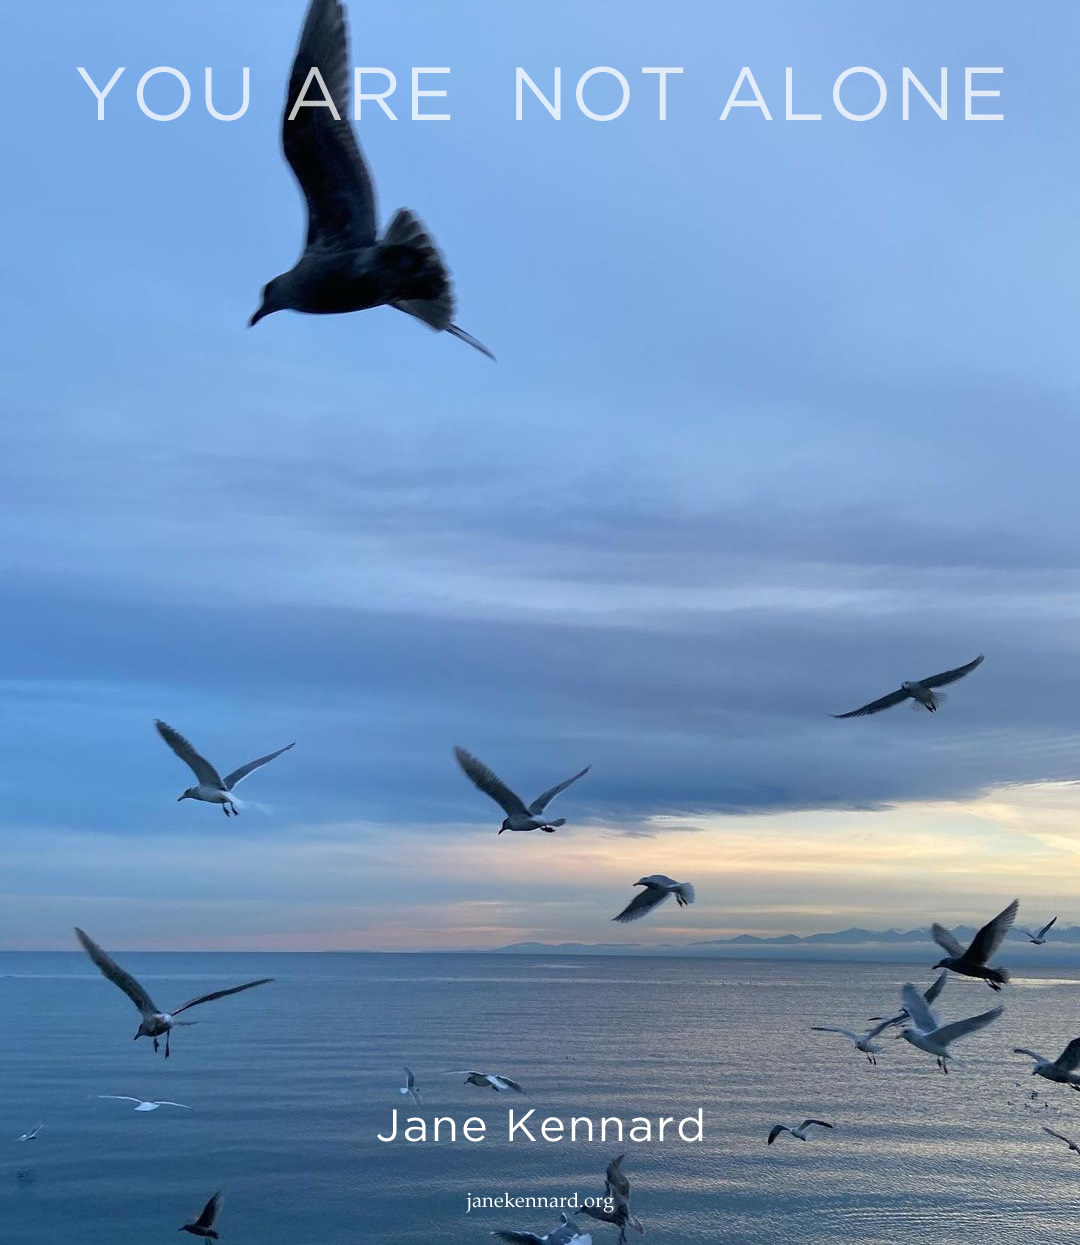 jane-kennard-you-are-not-alone-photo-kirsten-pierce